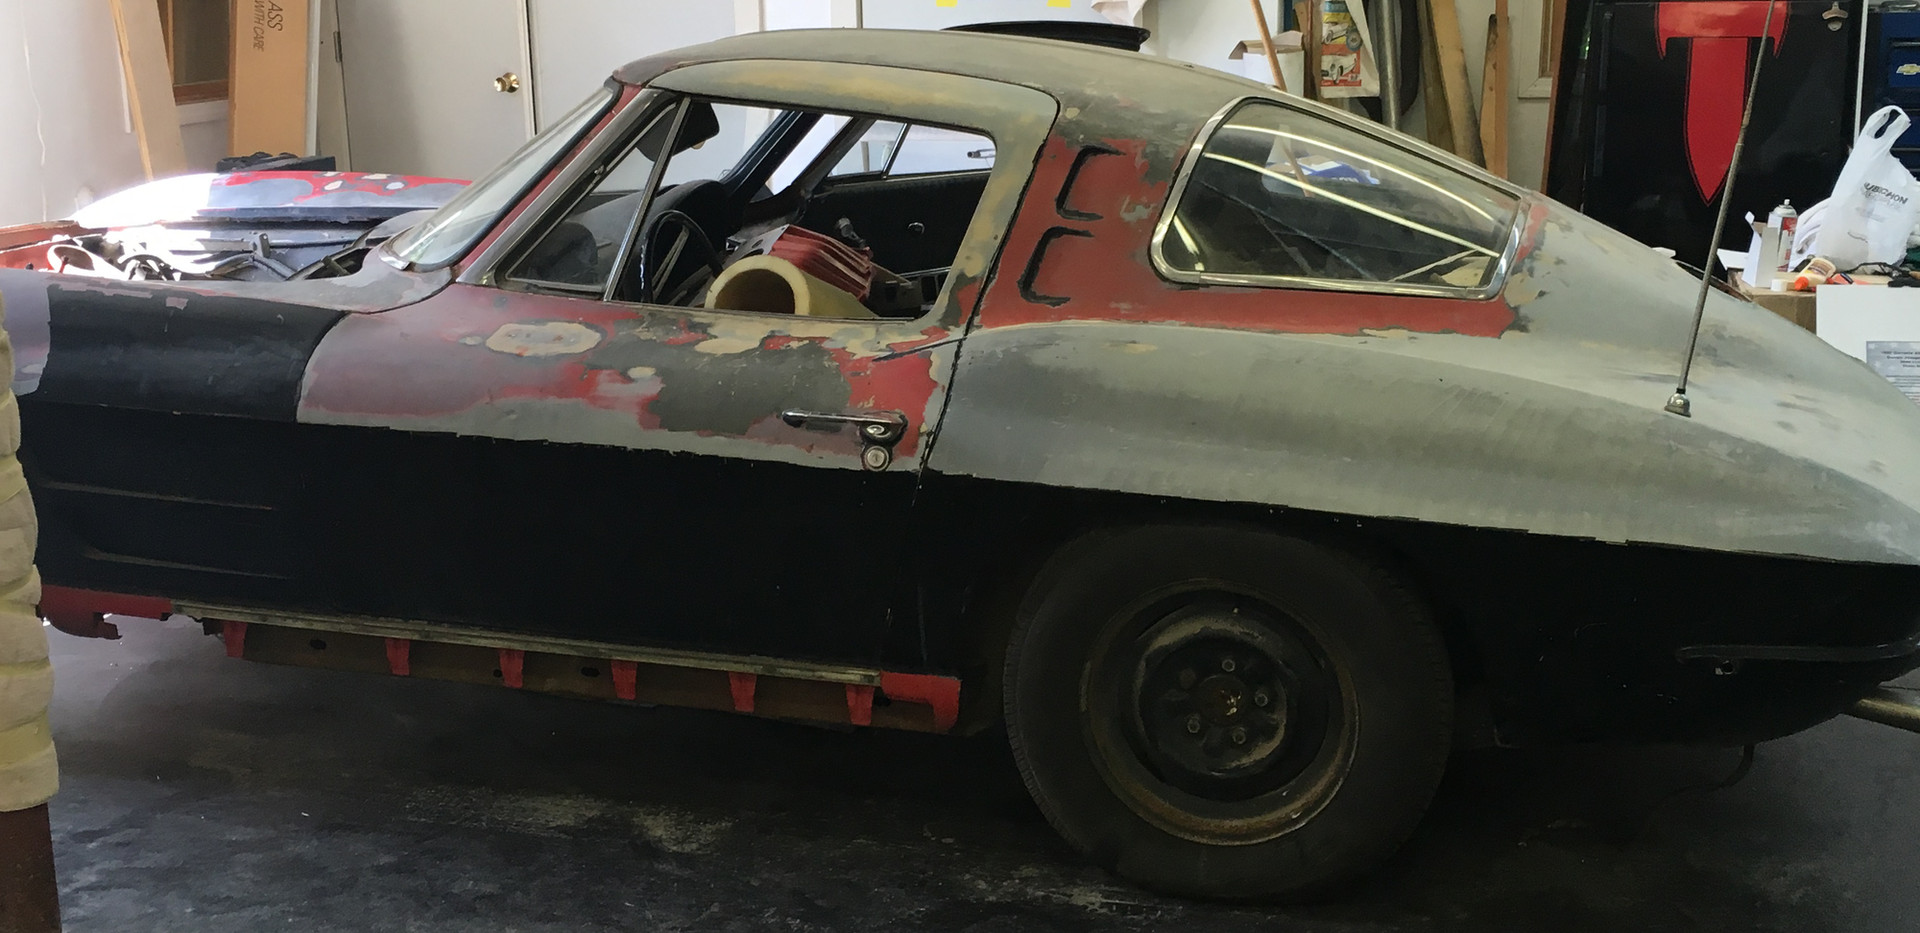 Project to be restored